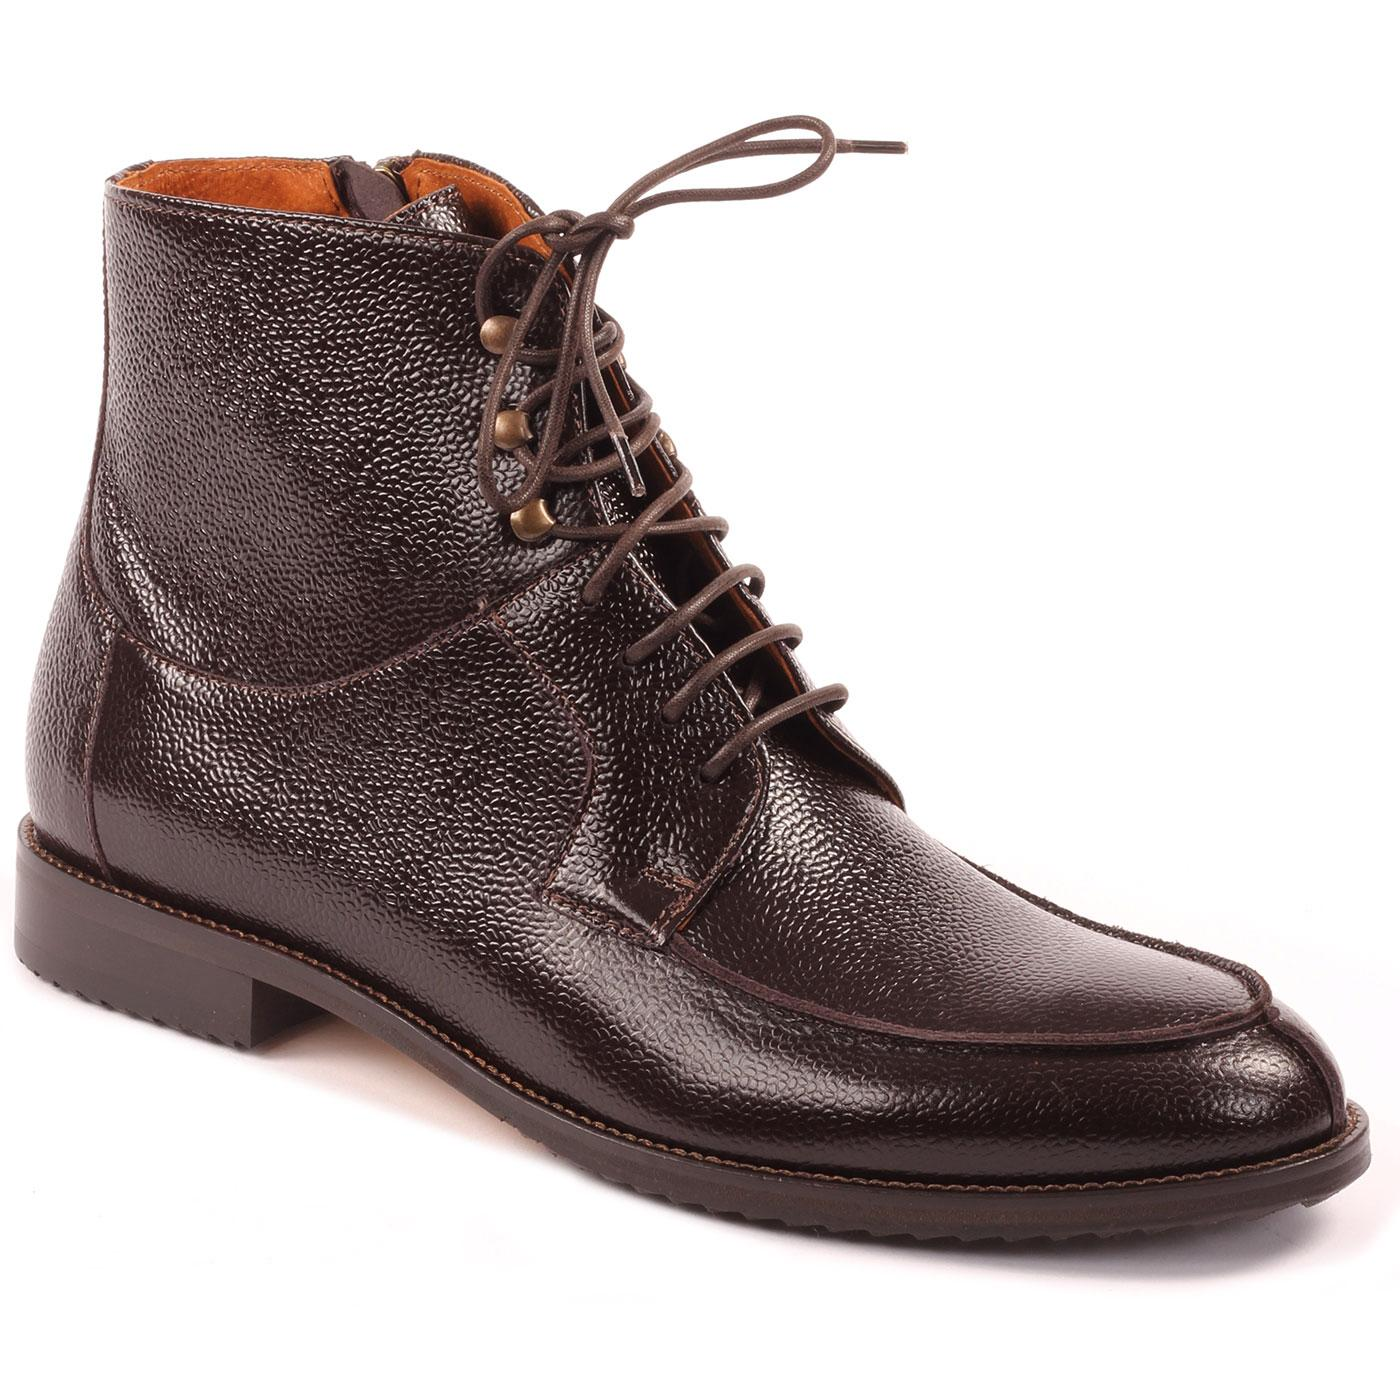 LACUZZO Men's Retro Scotch Grain Worker Boots